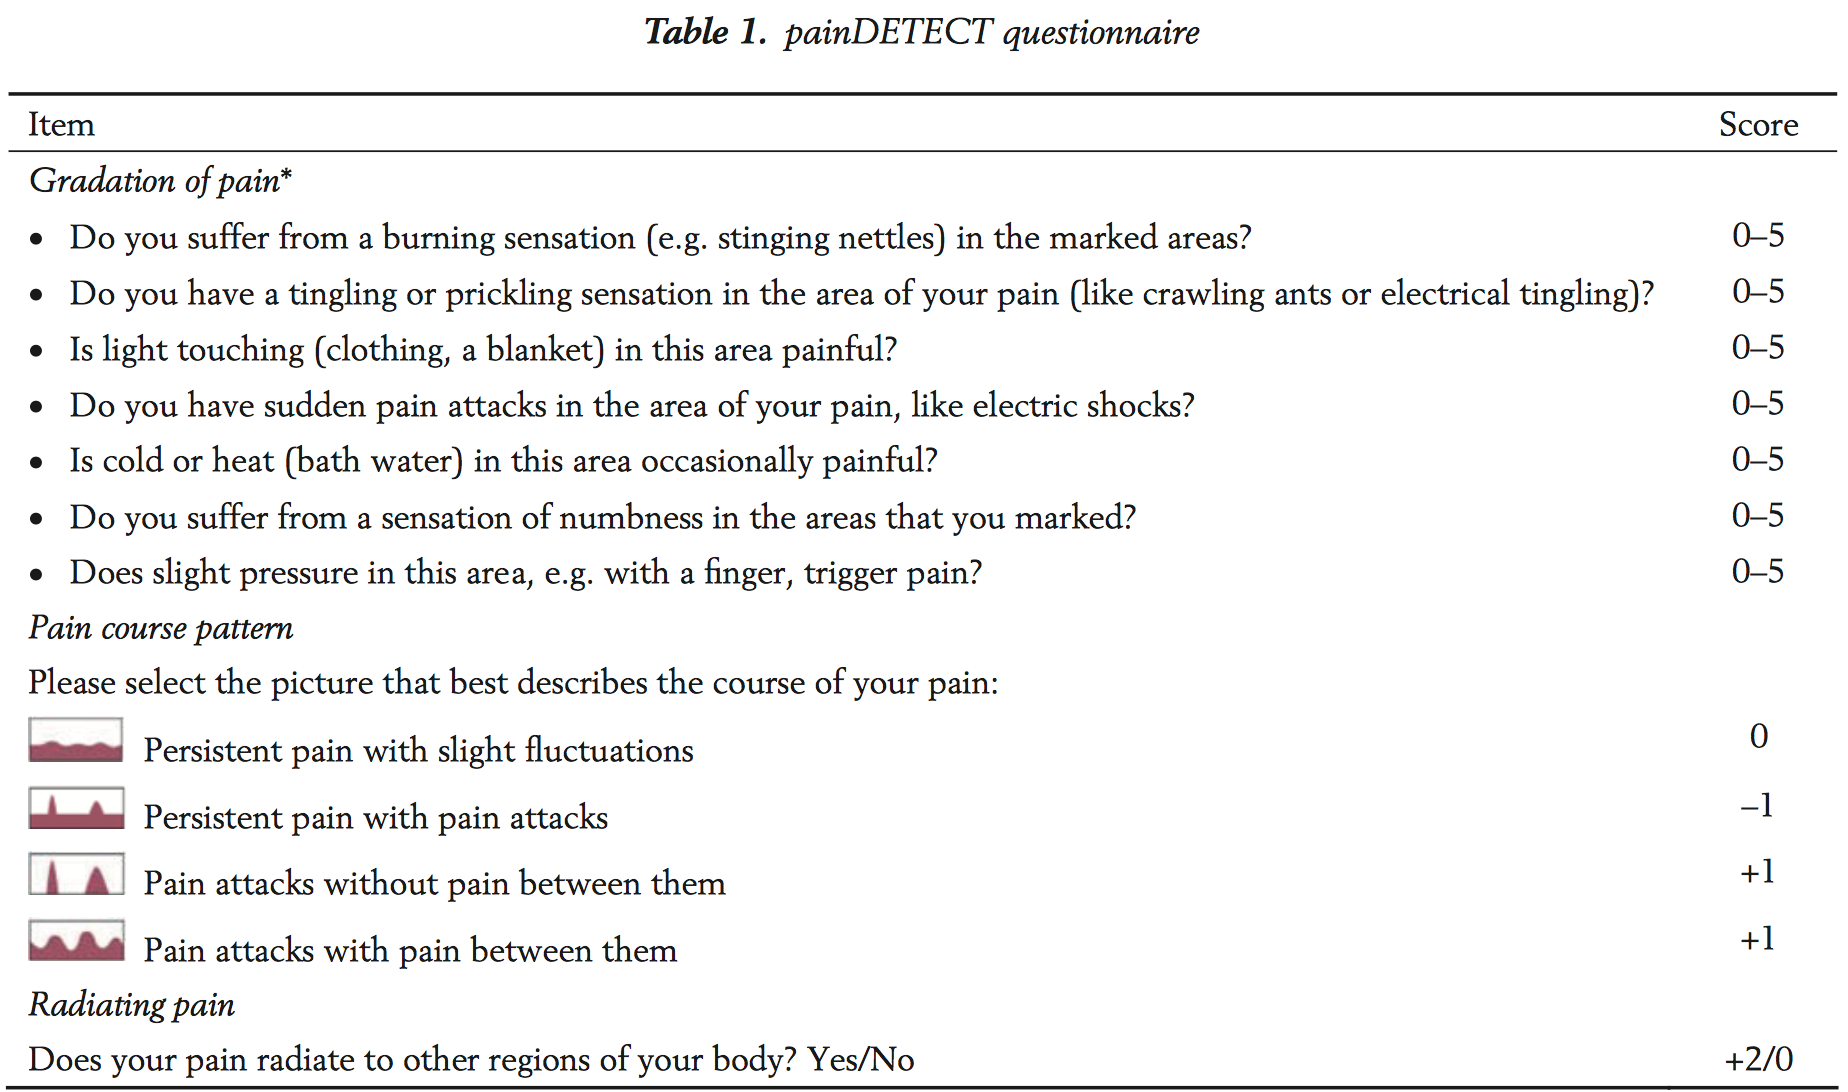 paindetect questionnaire and lumbar epidural steroid injection for chronic radiculopathy